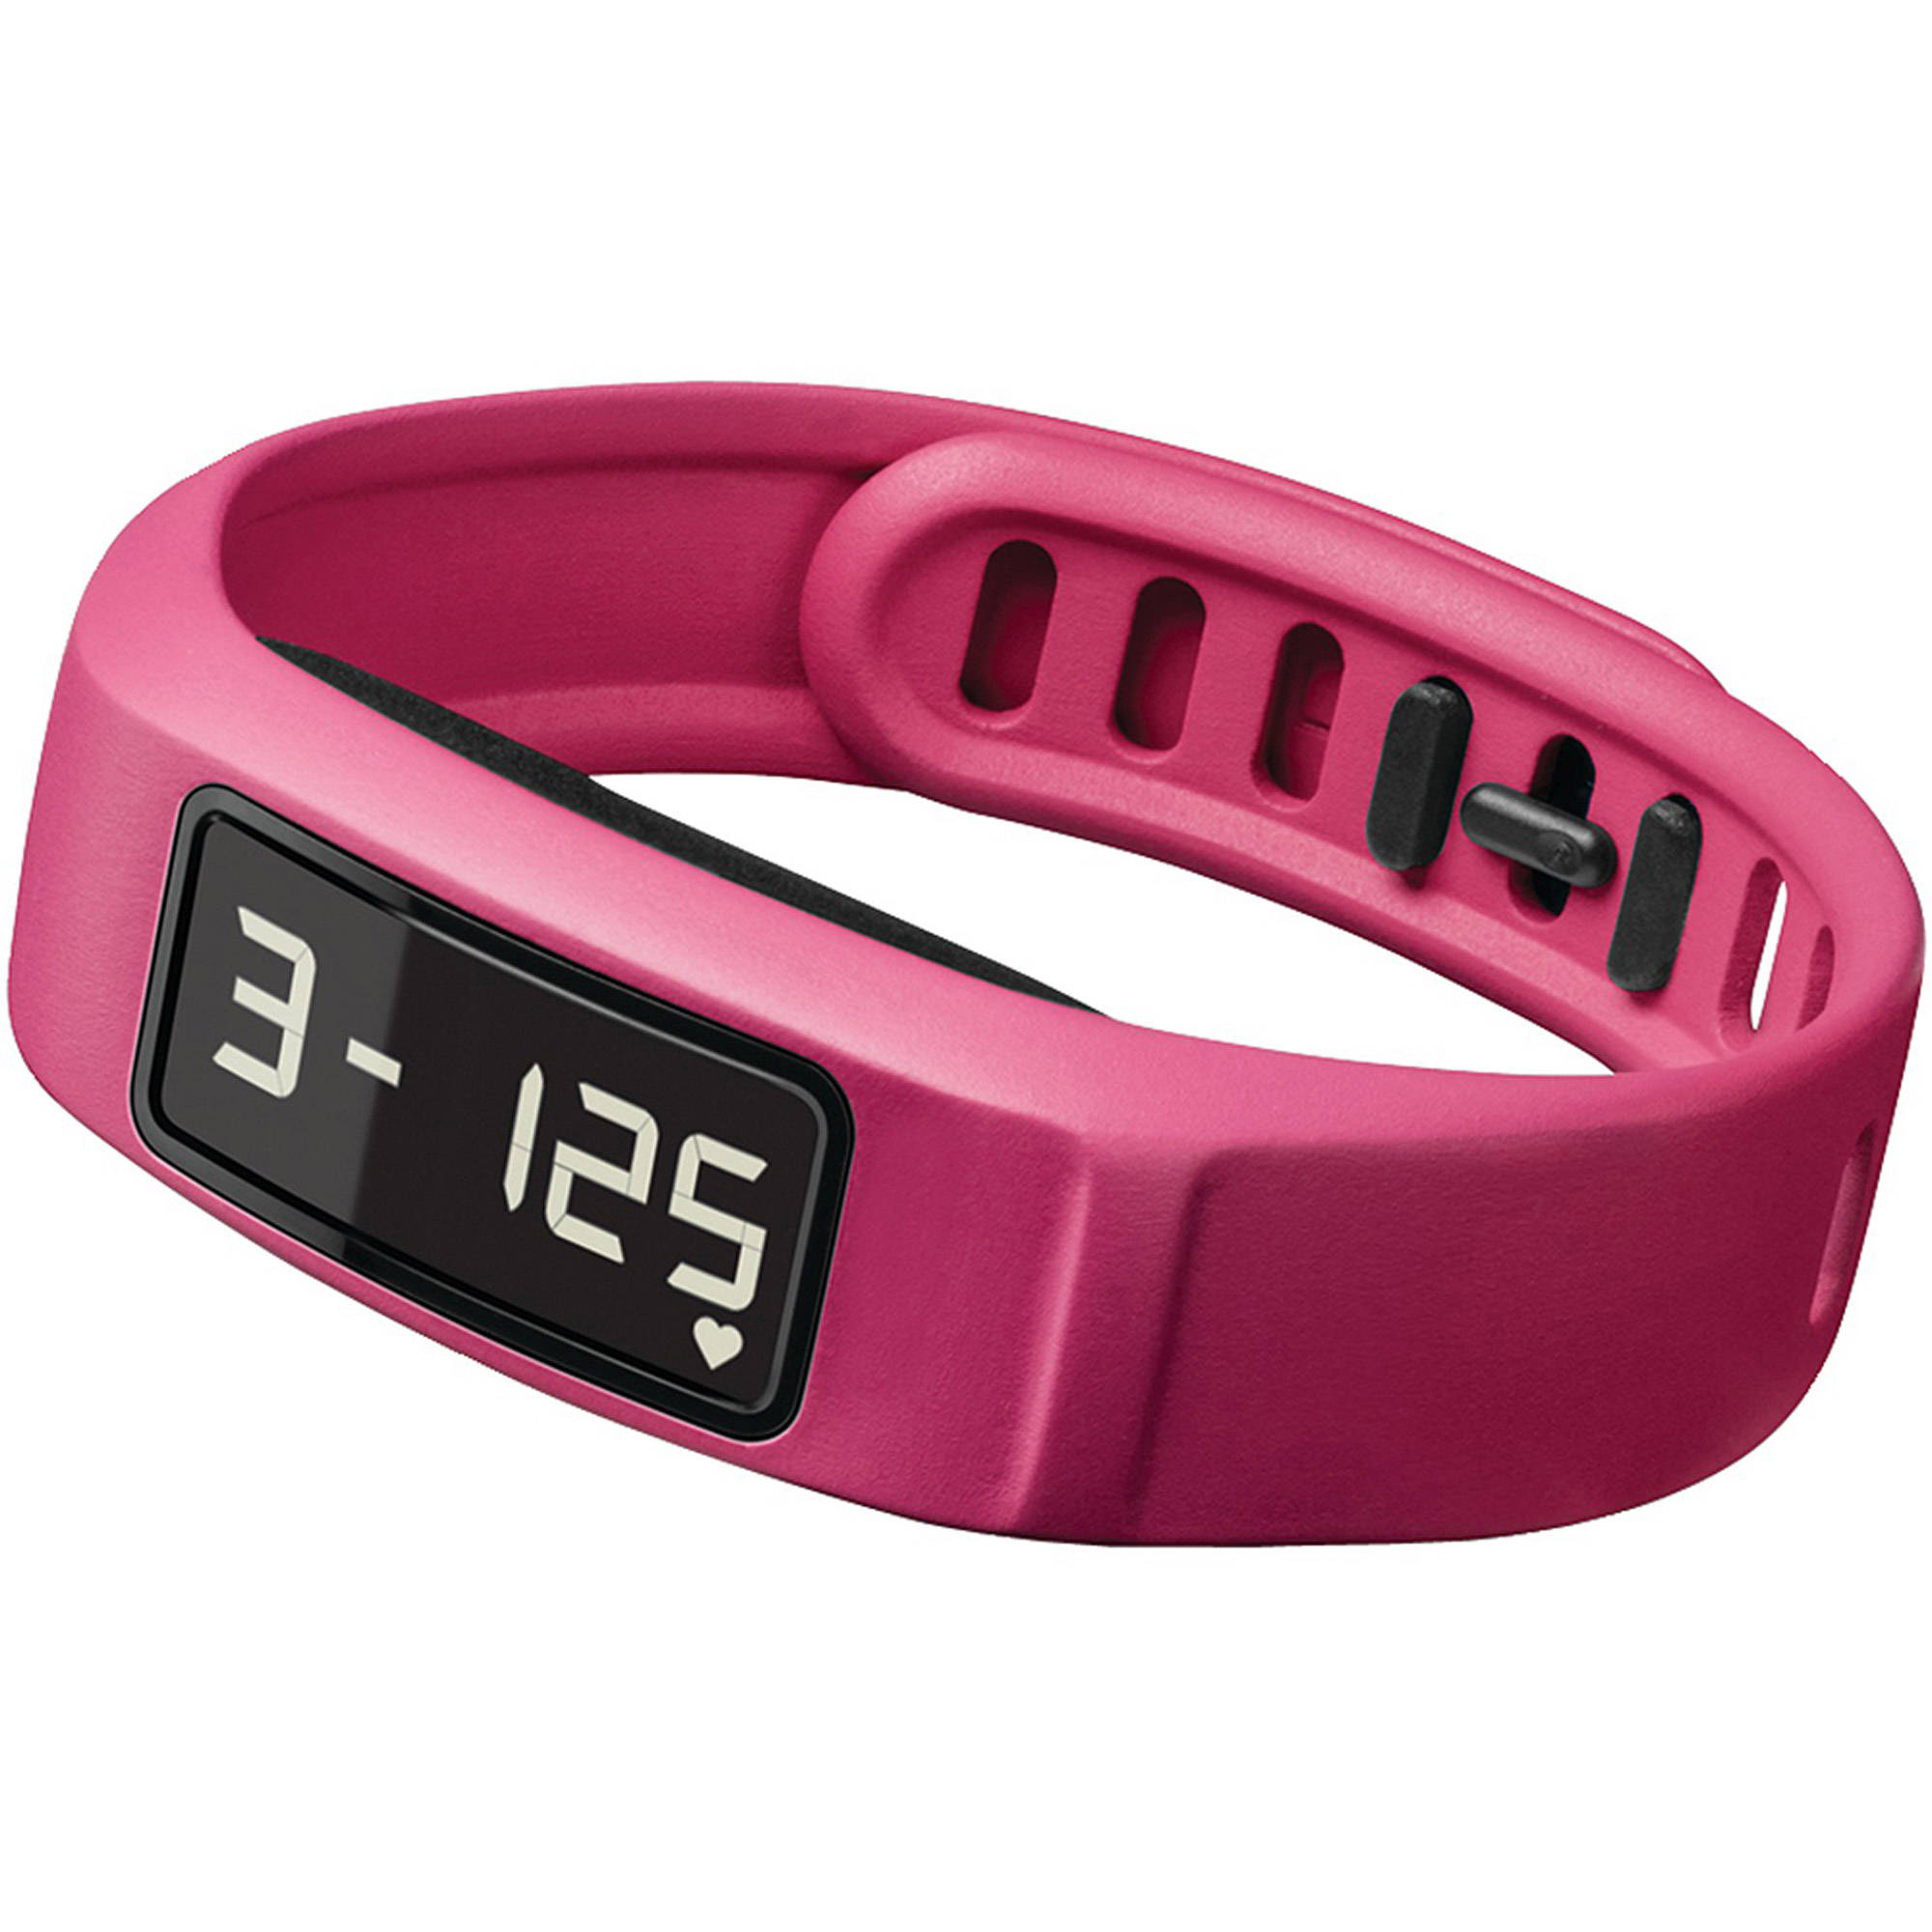 Garmin Vivofit 2 Smart Band Activity Tracker   Monitor   Pedometer   Timer   Calorie Counter, Pink by Garmin